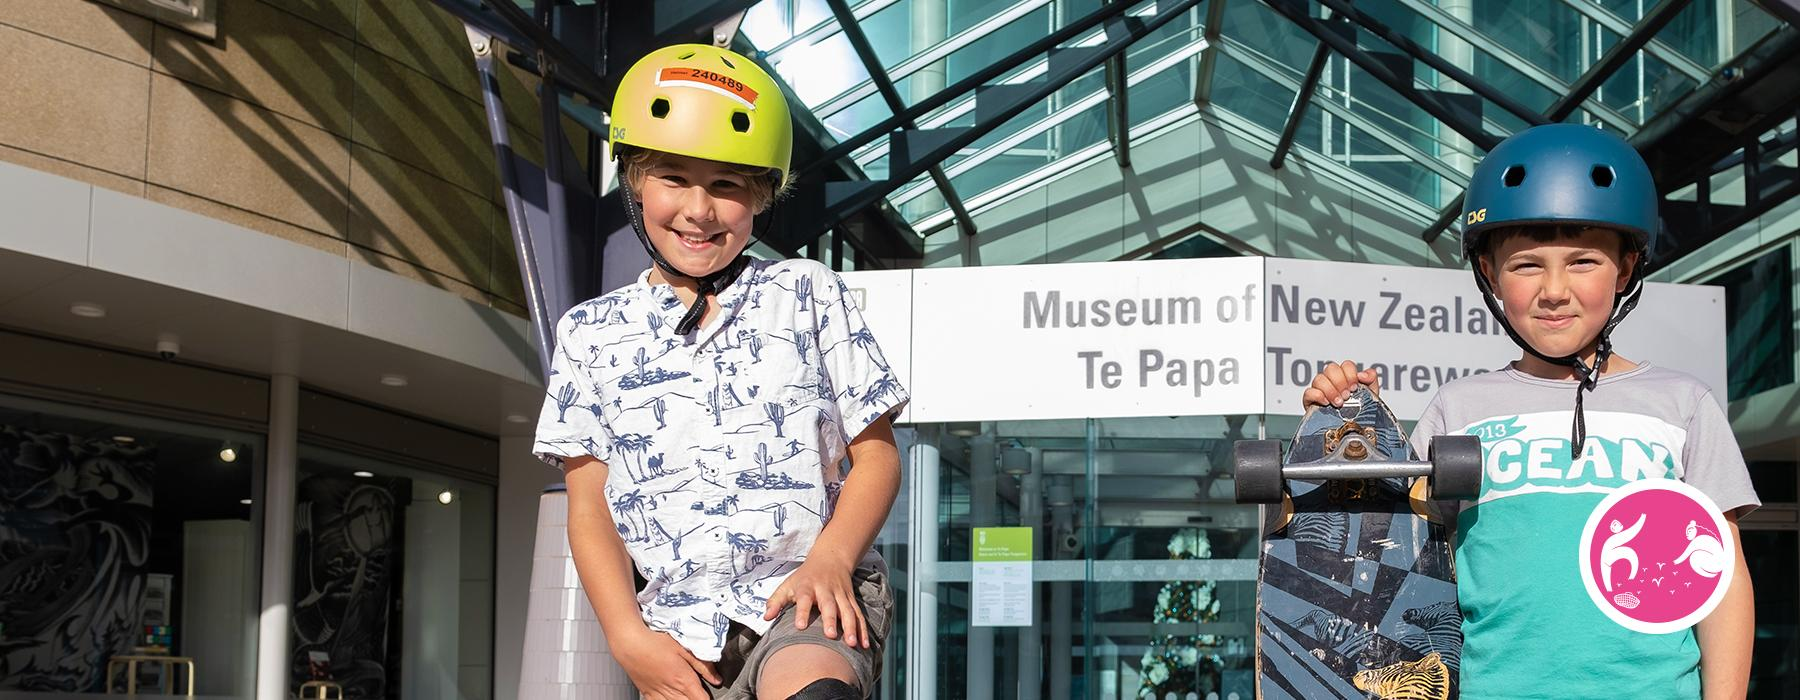 Two young boys pose outside Te Papa with their skateboards